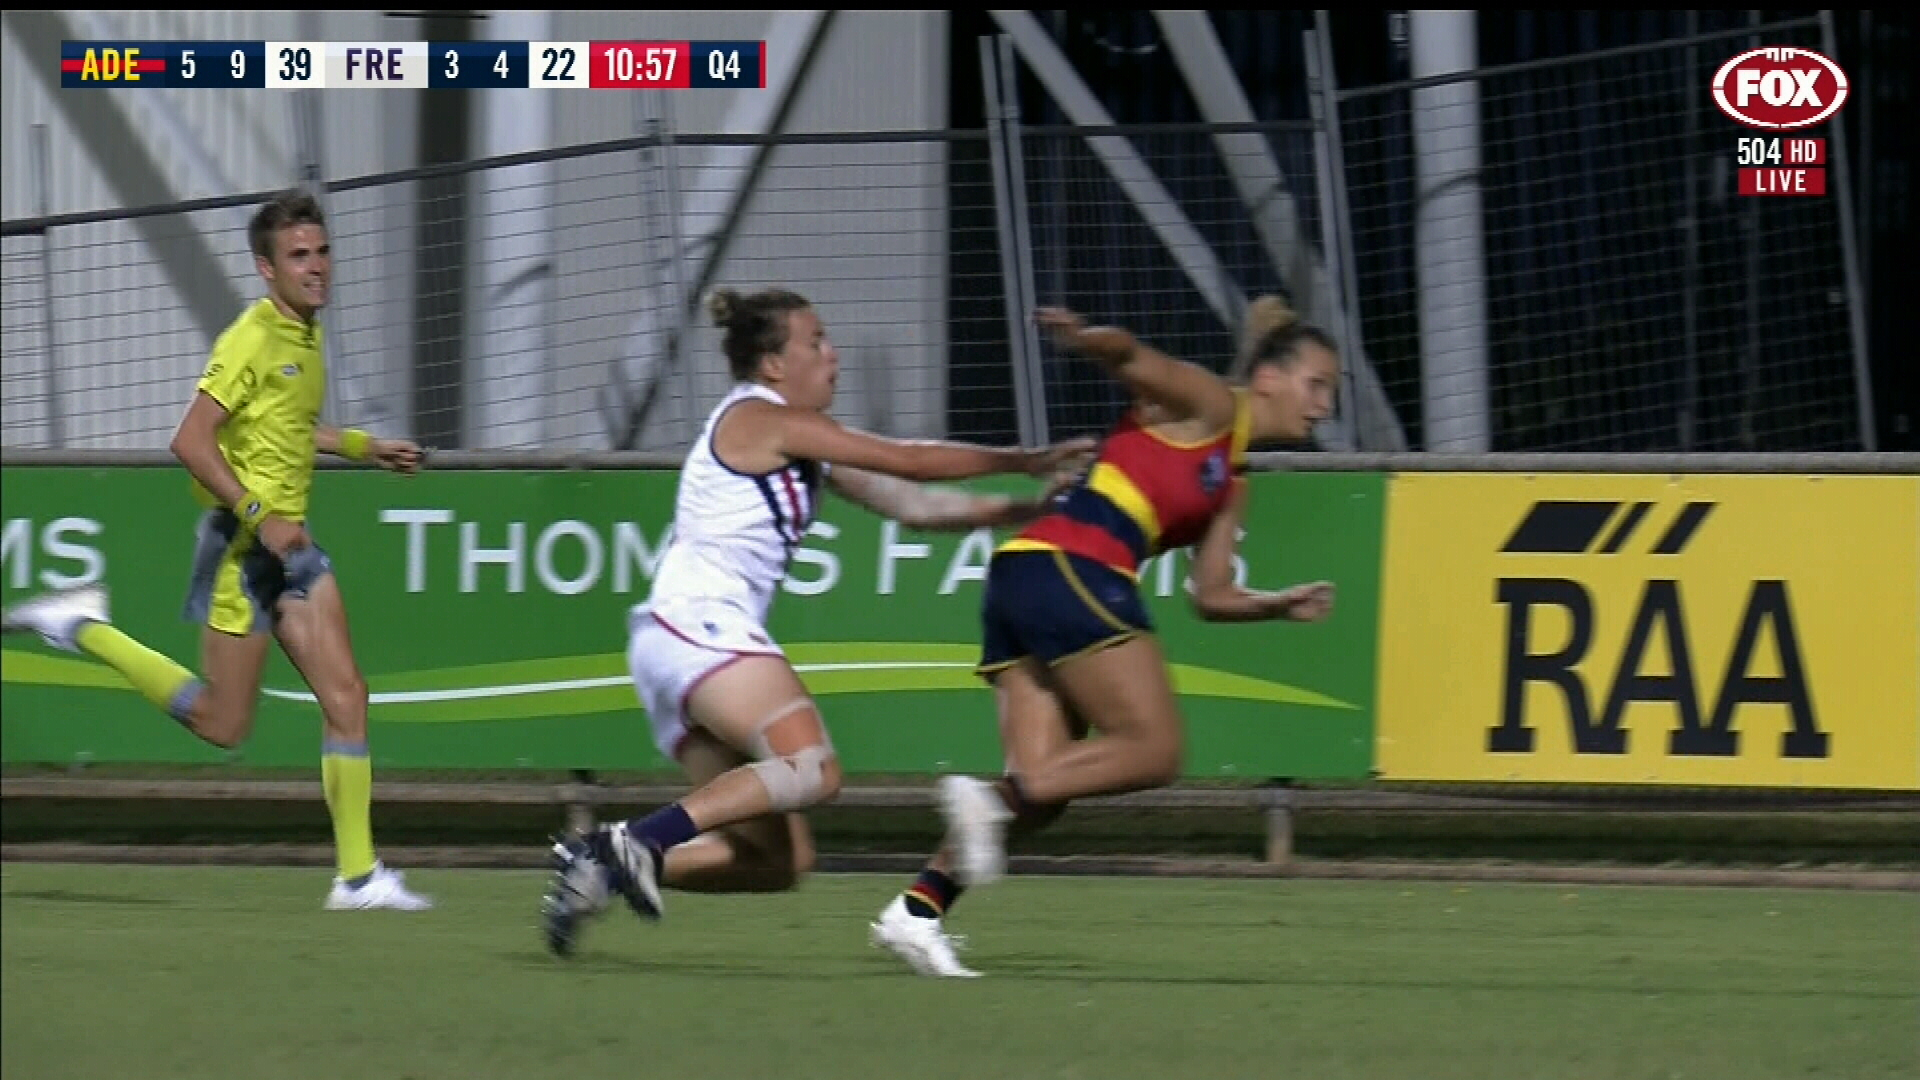 Adelaide smash Fremantle in AFLW